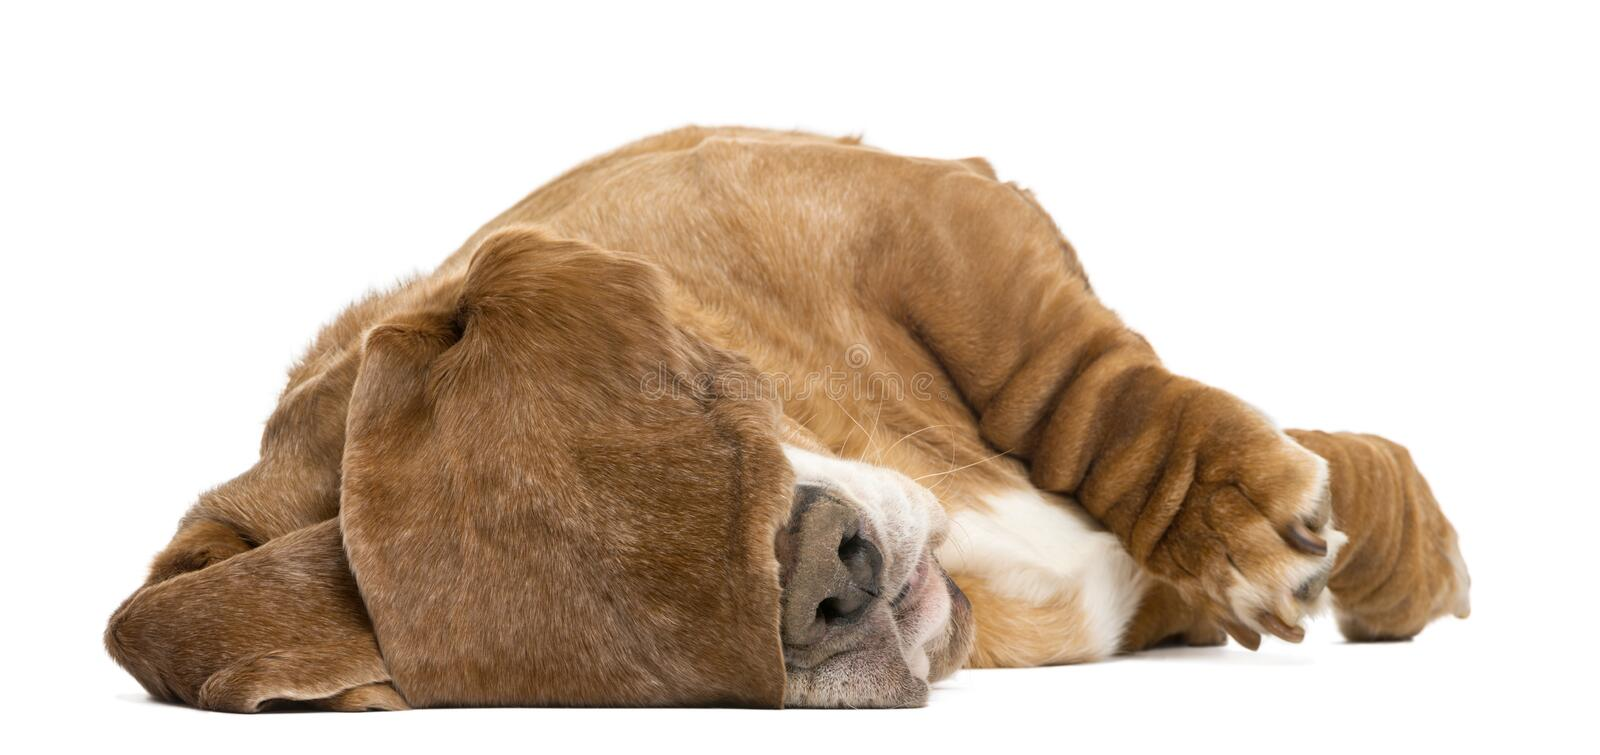 Download Basset Hound Lying And Sleeping With Its Ears Hiding Its Eyes Stock Image - Image: 30420375